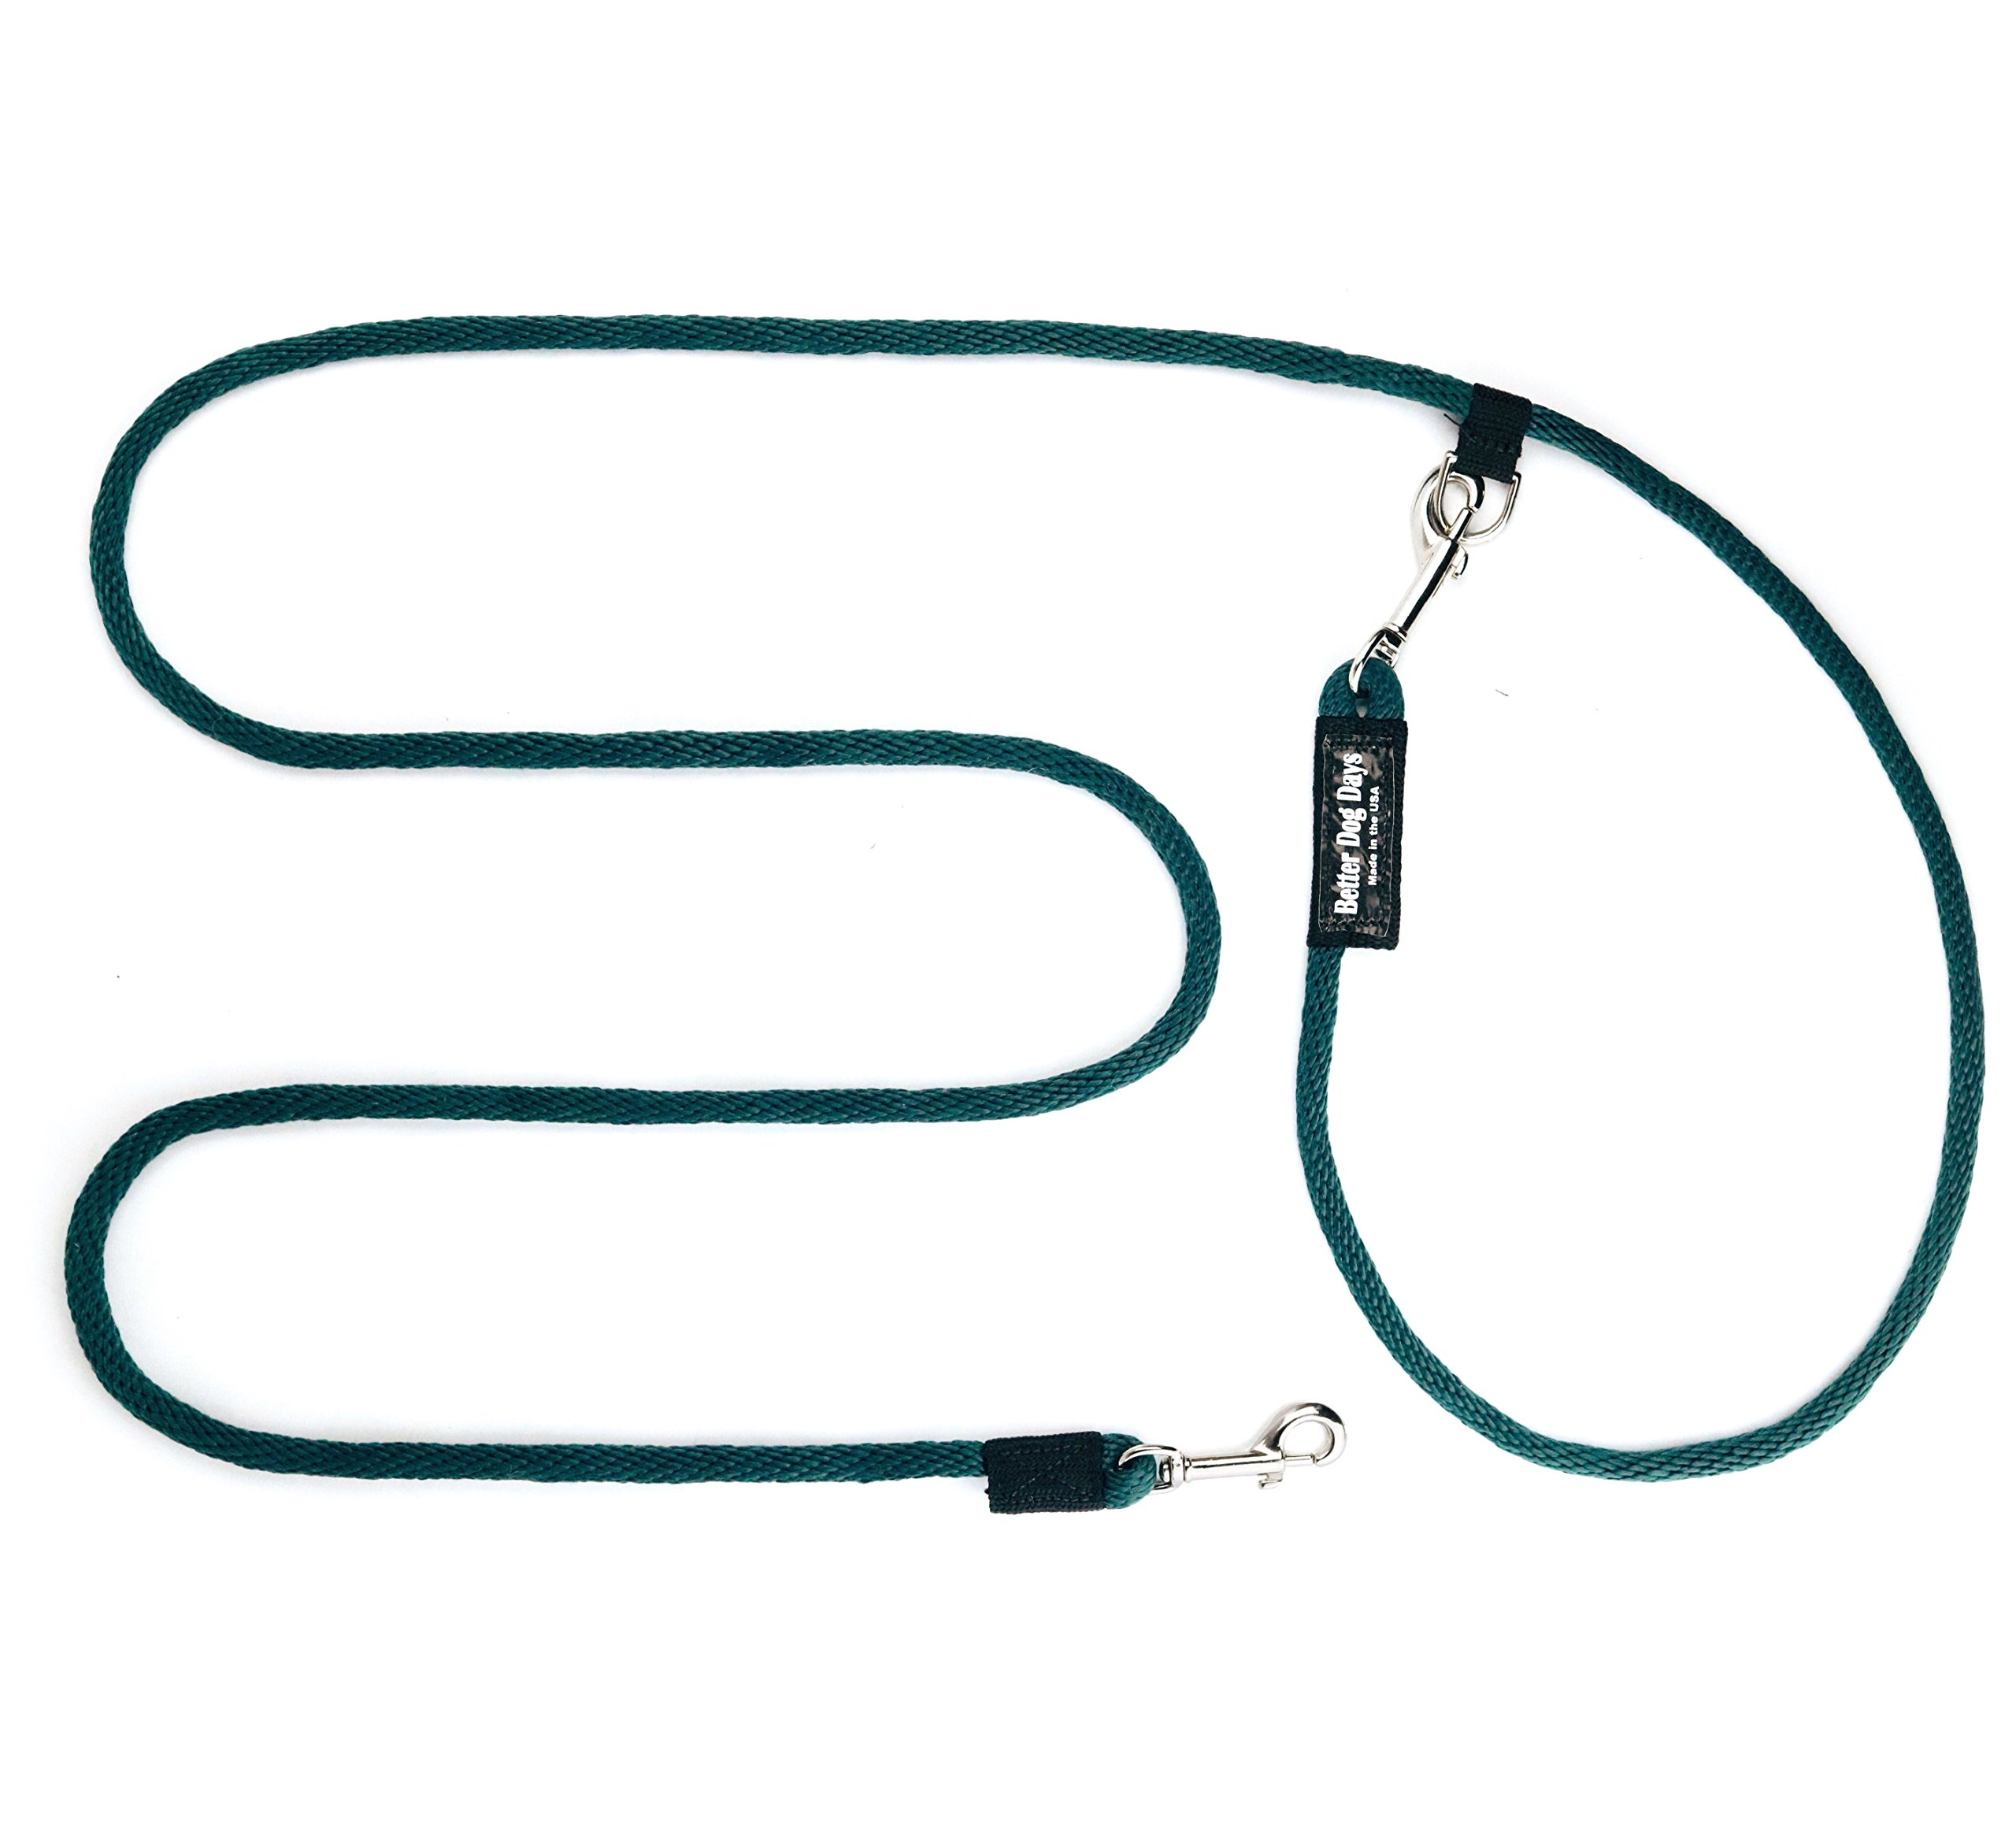 Best Hands Free Dog Leash for Walking, Running, Hiking, Backpacking with Your Dog, 8-Foot Long, Adjustable, Versatile, Durable, Comfortable for You and Your Dog, Around the Waist or Over the Shoulder by Better Dog Days